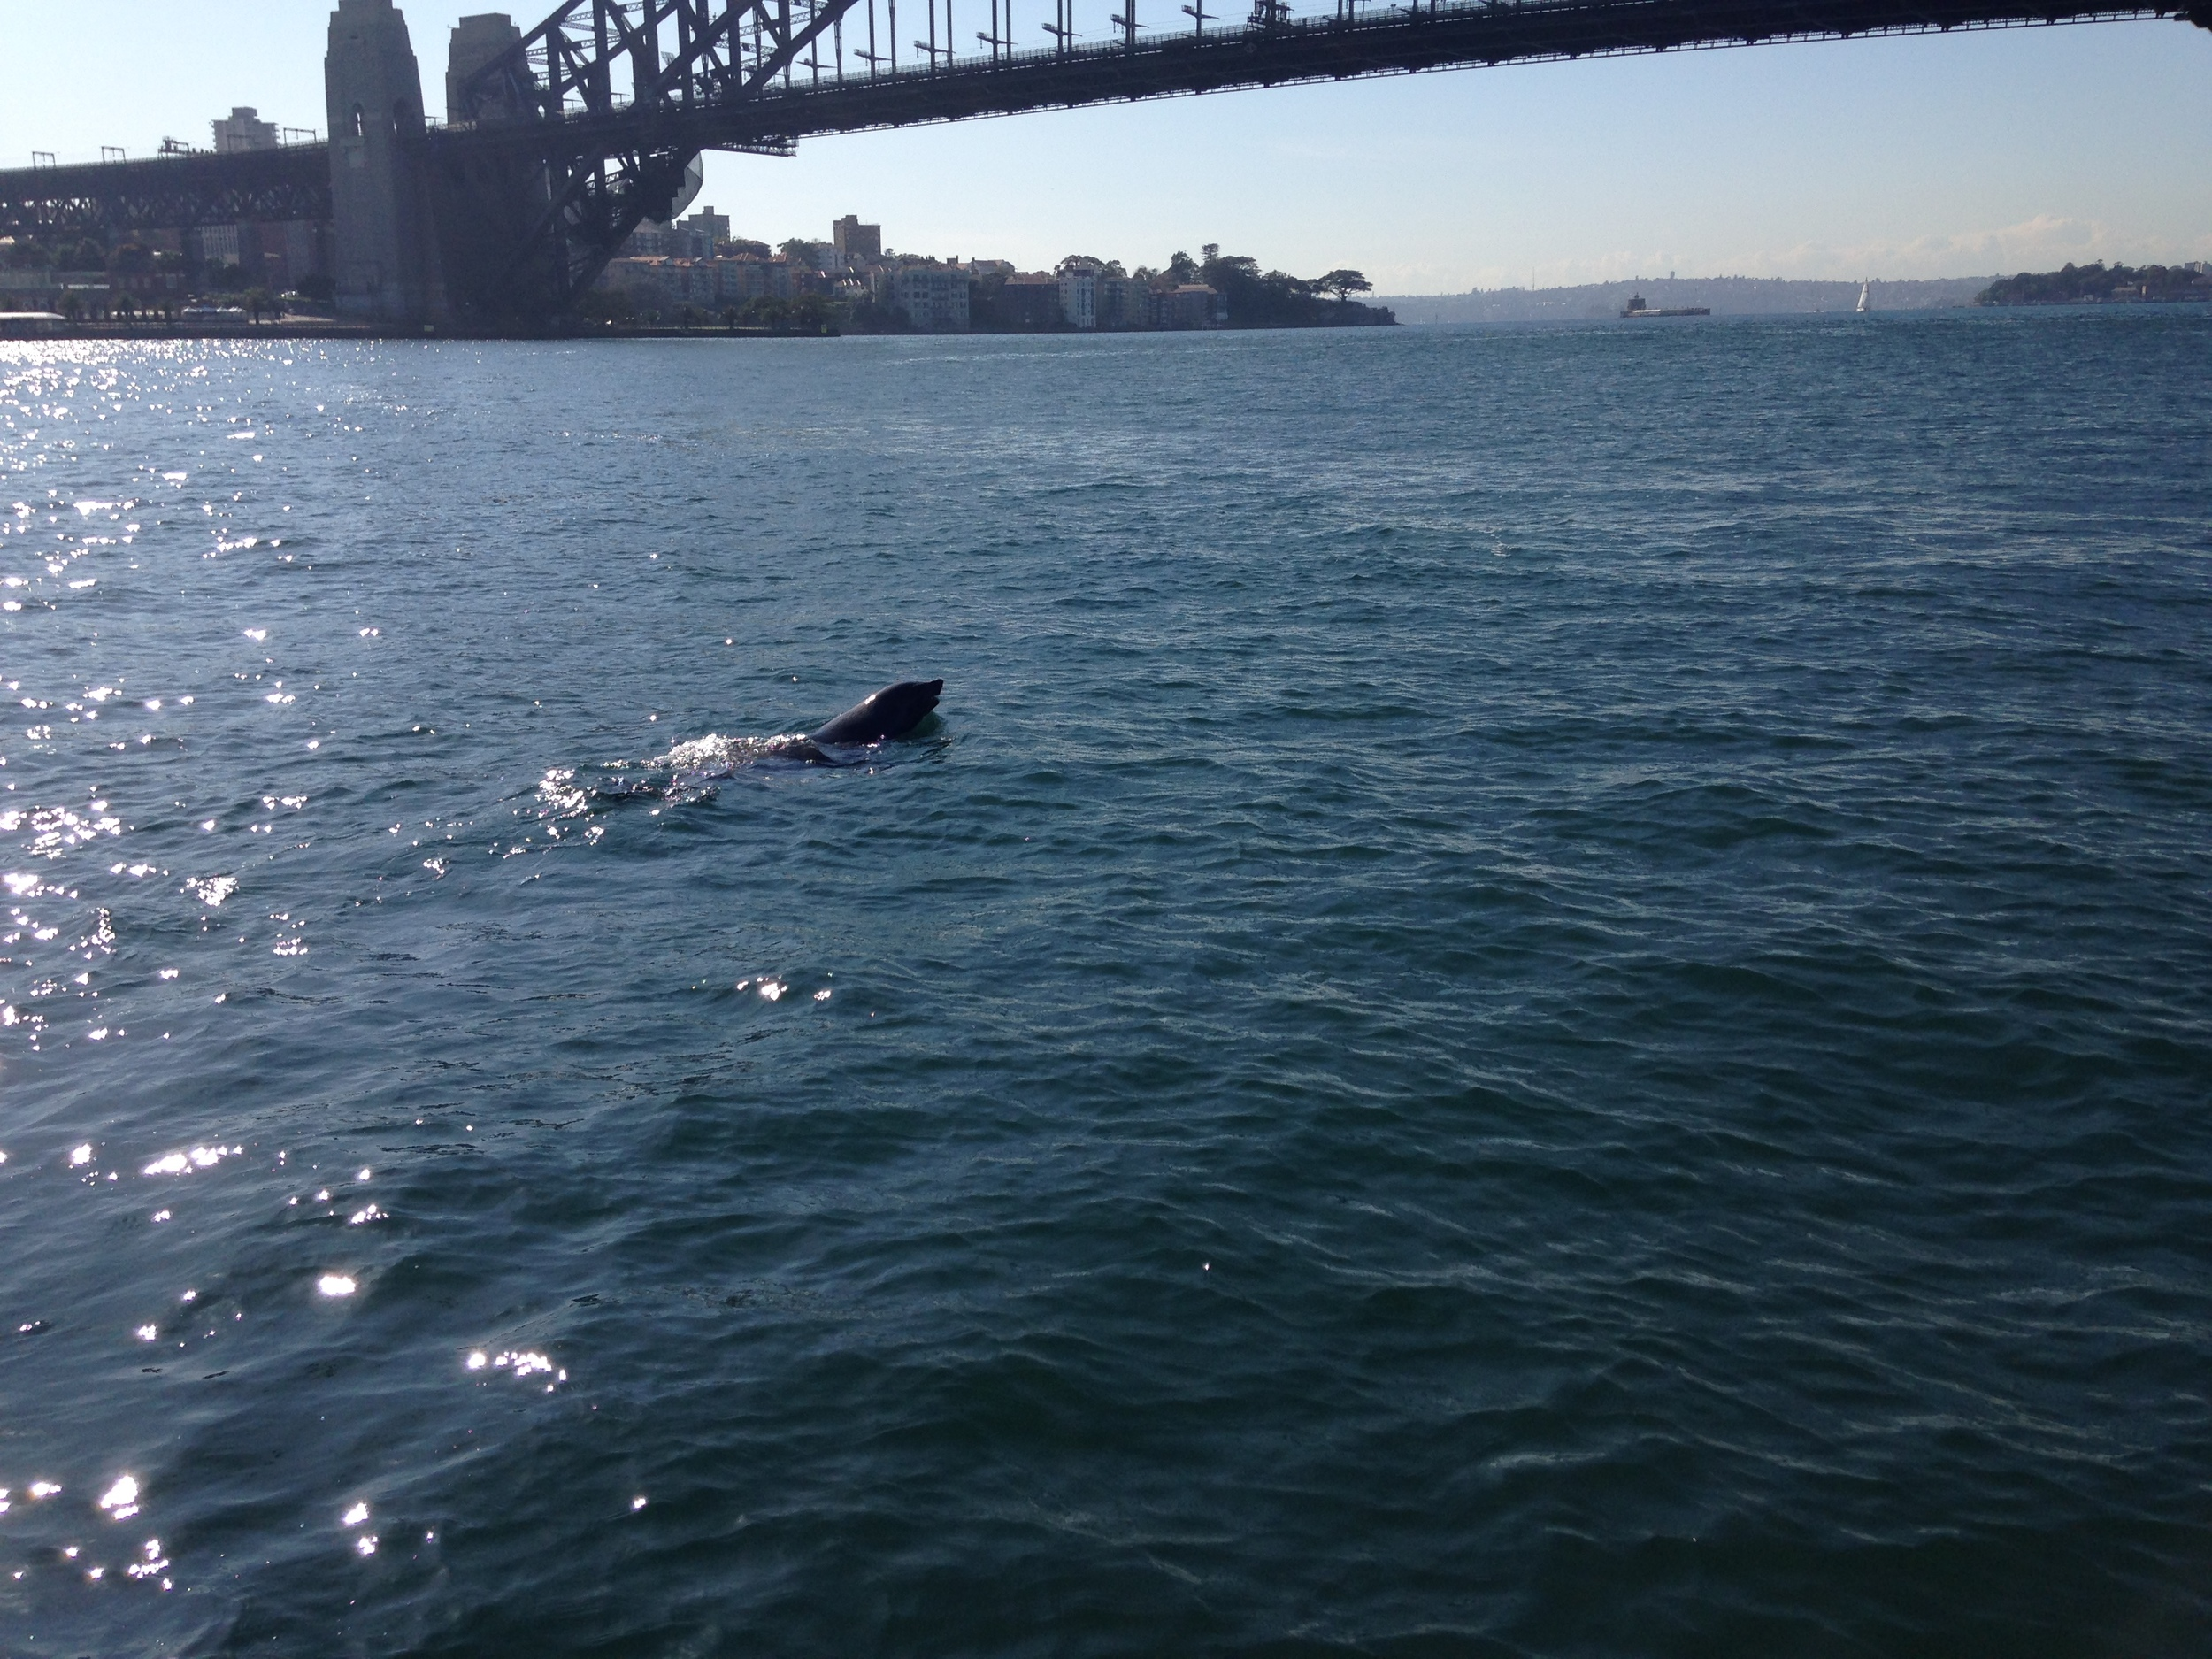 Sydney The Seal @ sydney charter boat hire